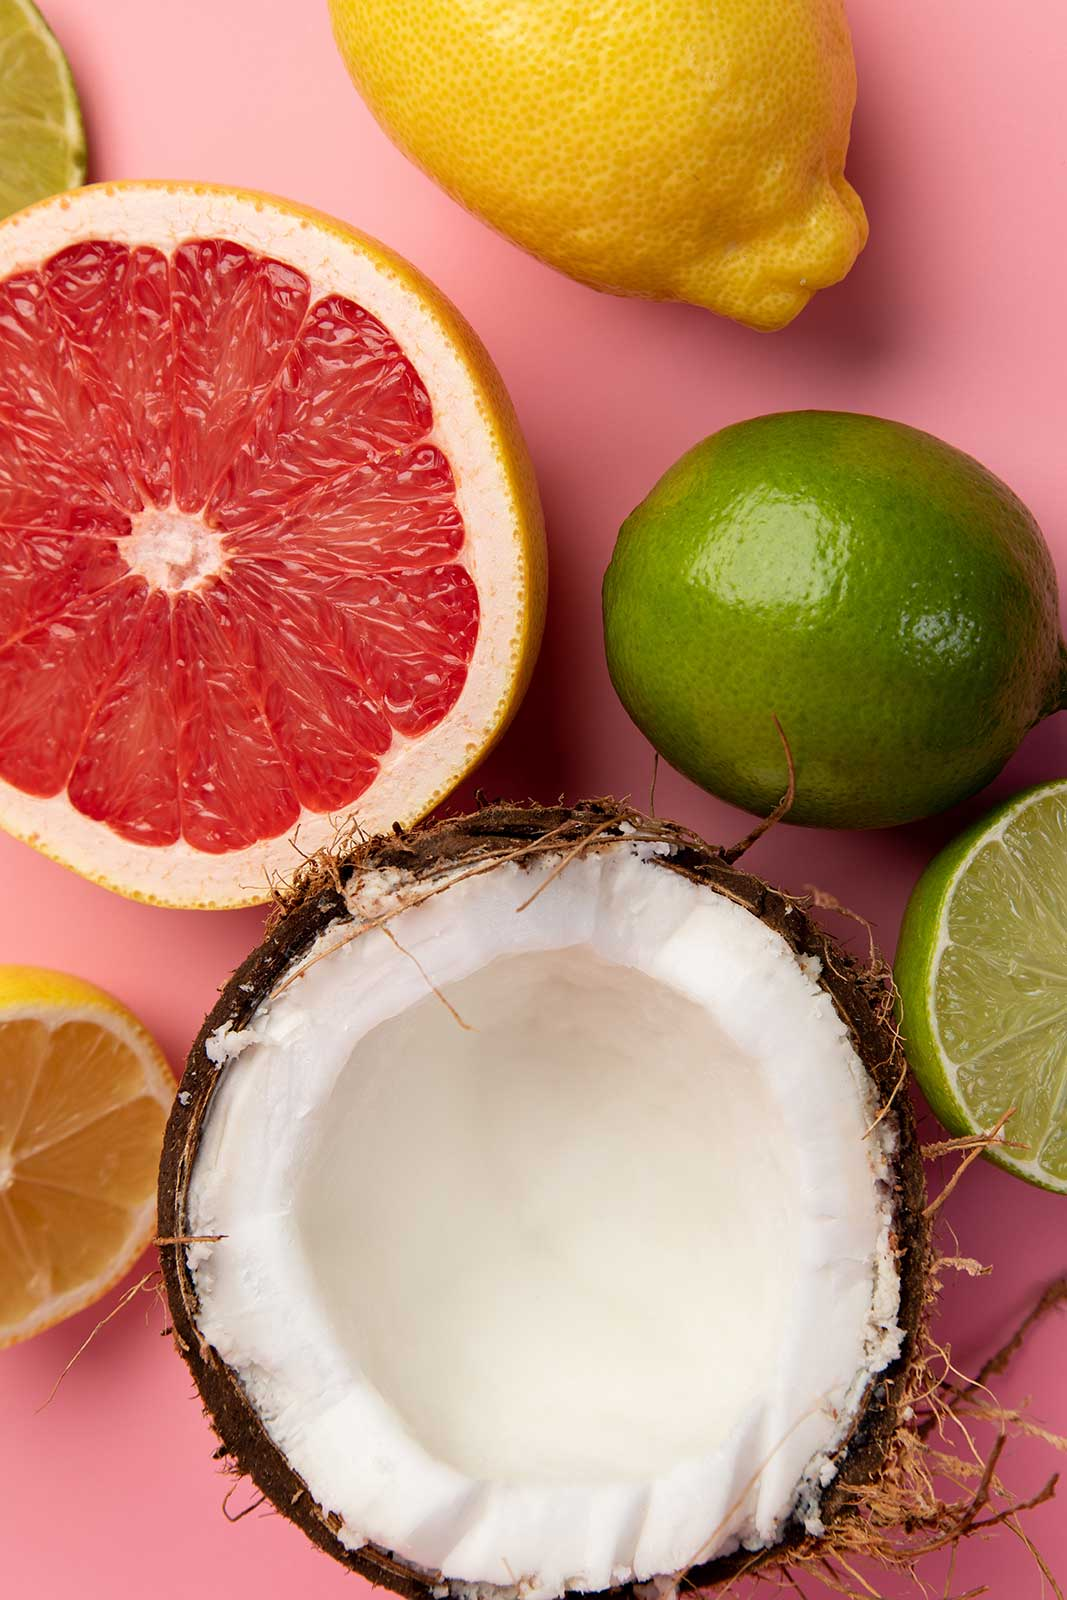 a pink grapefruit, an open coconut, a lemon and limes are photographed against a pink background